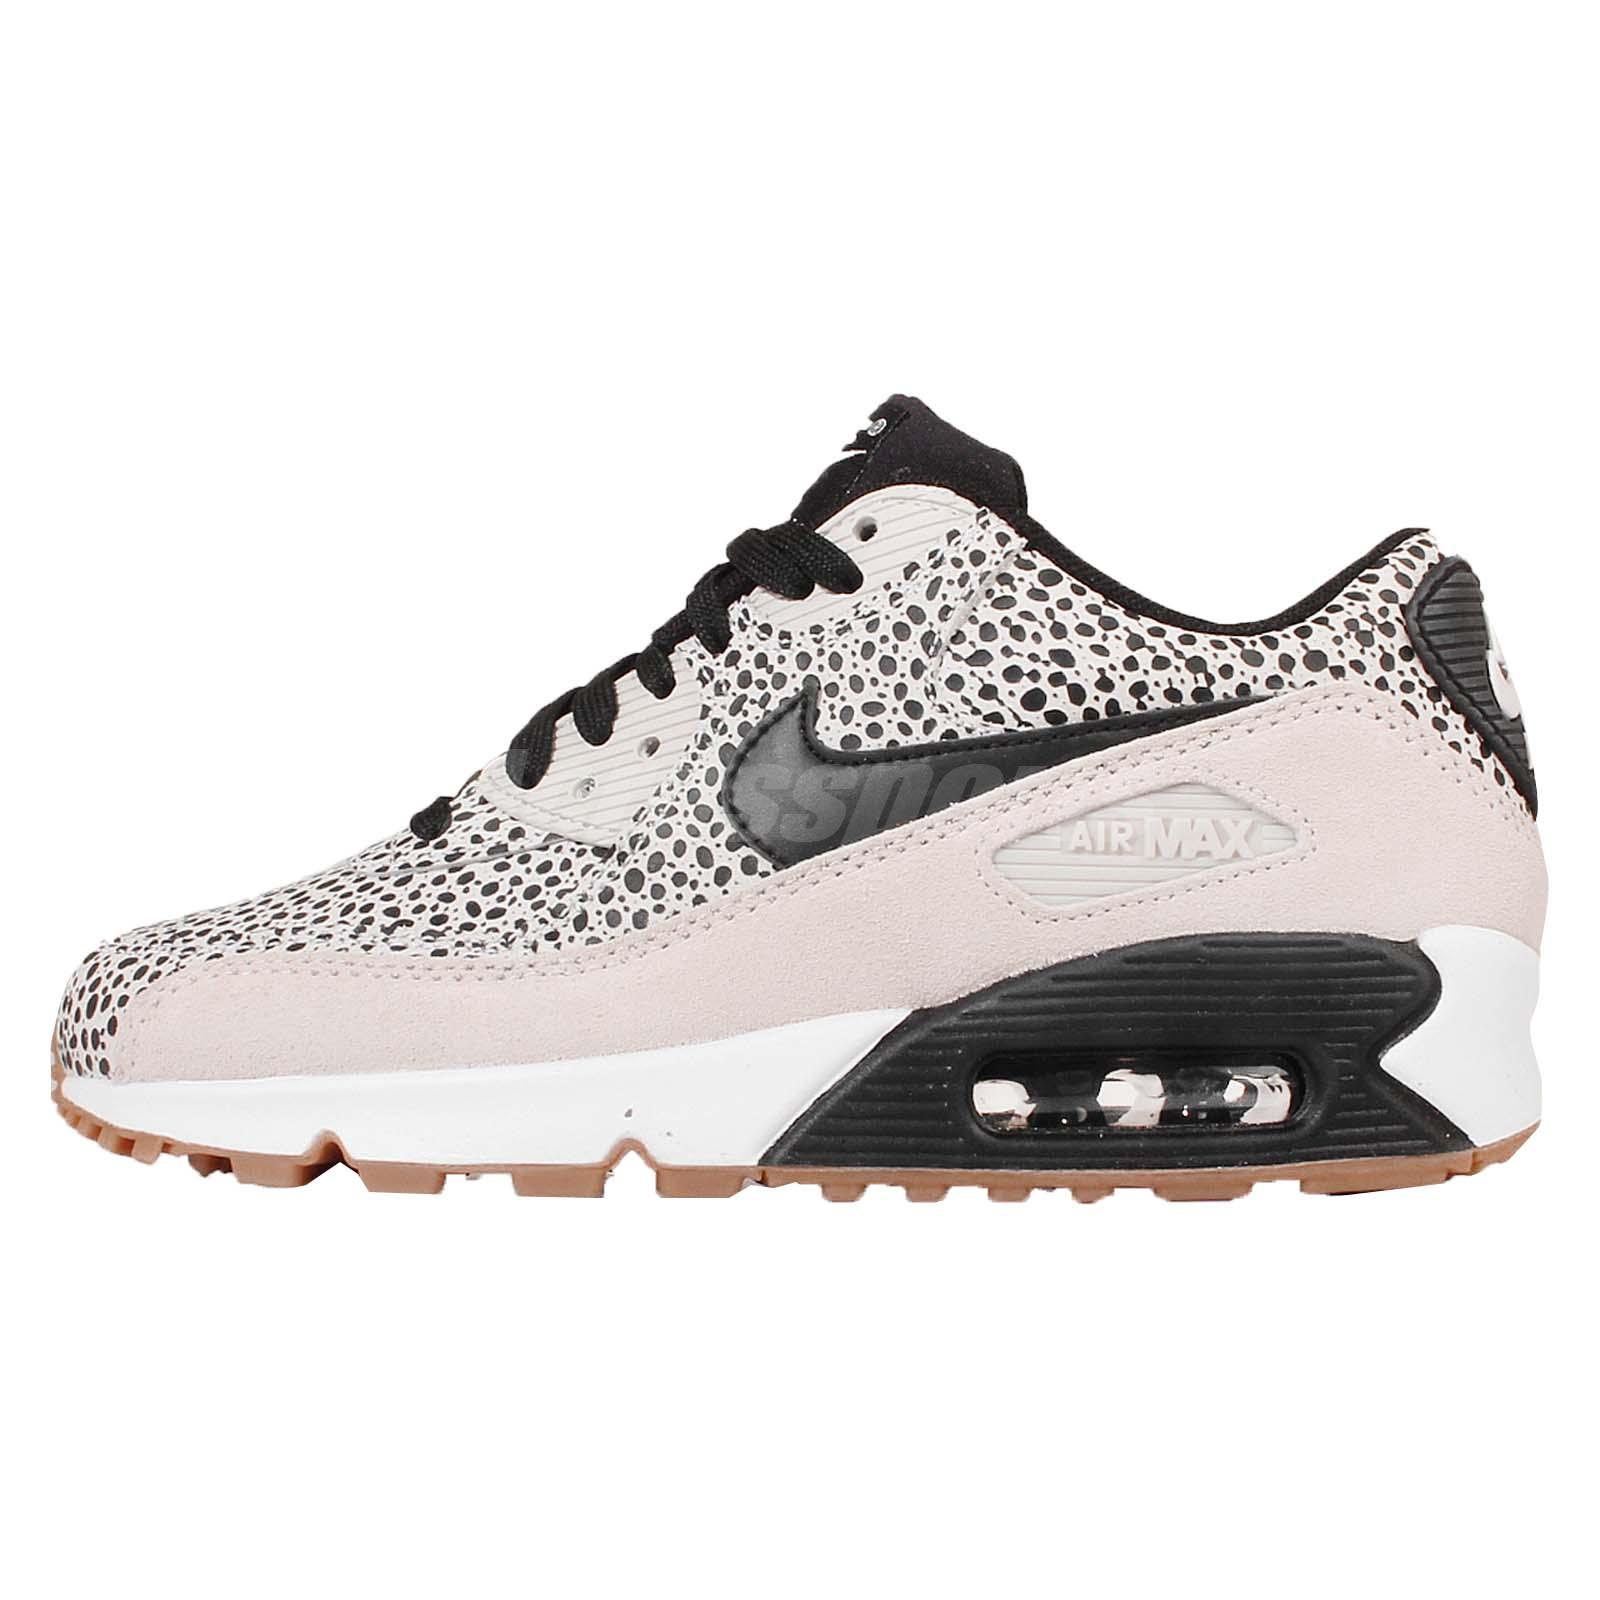 Nike Air Max 90 Women | eBay